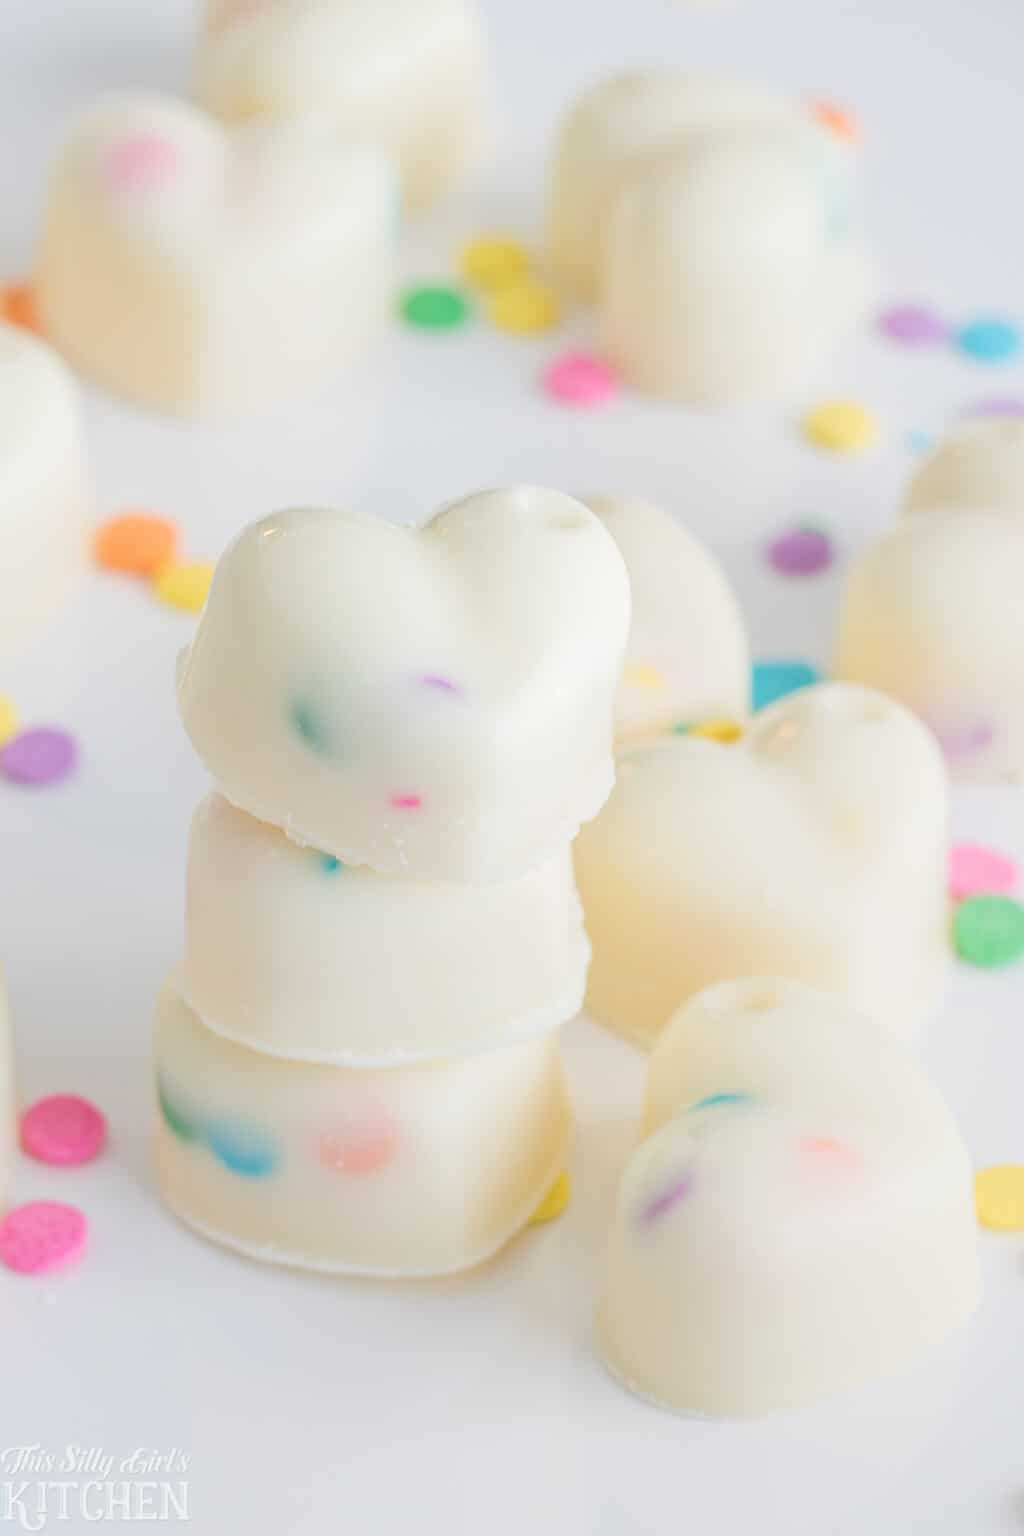 #Funfetti white chocolate truffles, made with white chocolate #ganache, these are an easy, fun candy you can make at home! #Recipe from ThisSillyGirlsKitchen.com #whitechocolate #truffles #valentinesday #candy